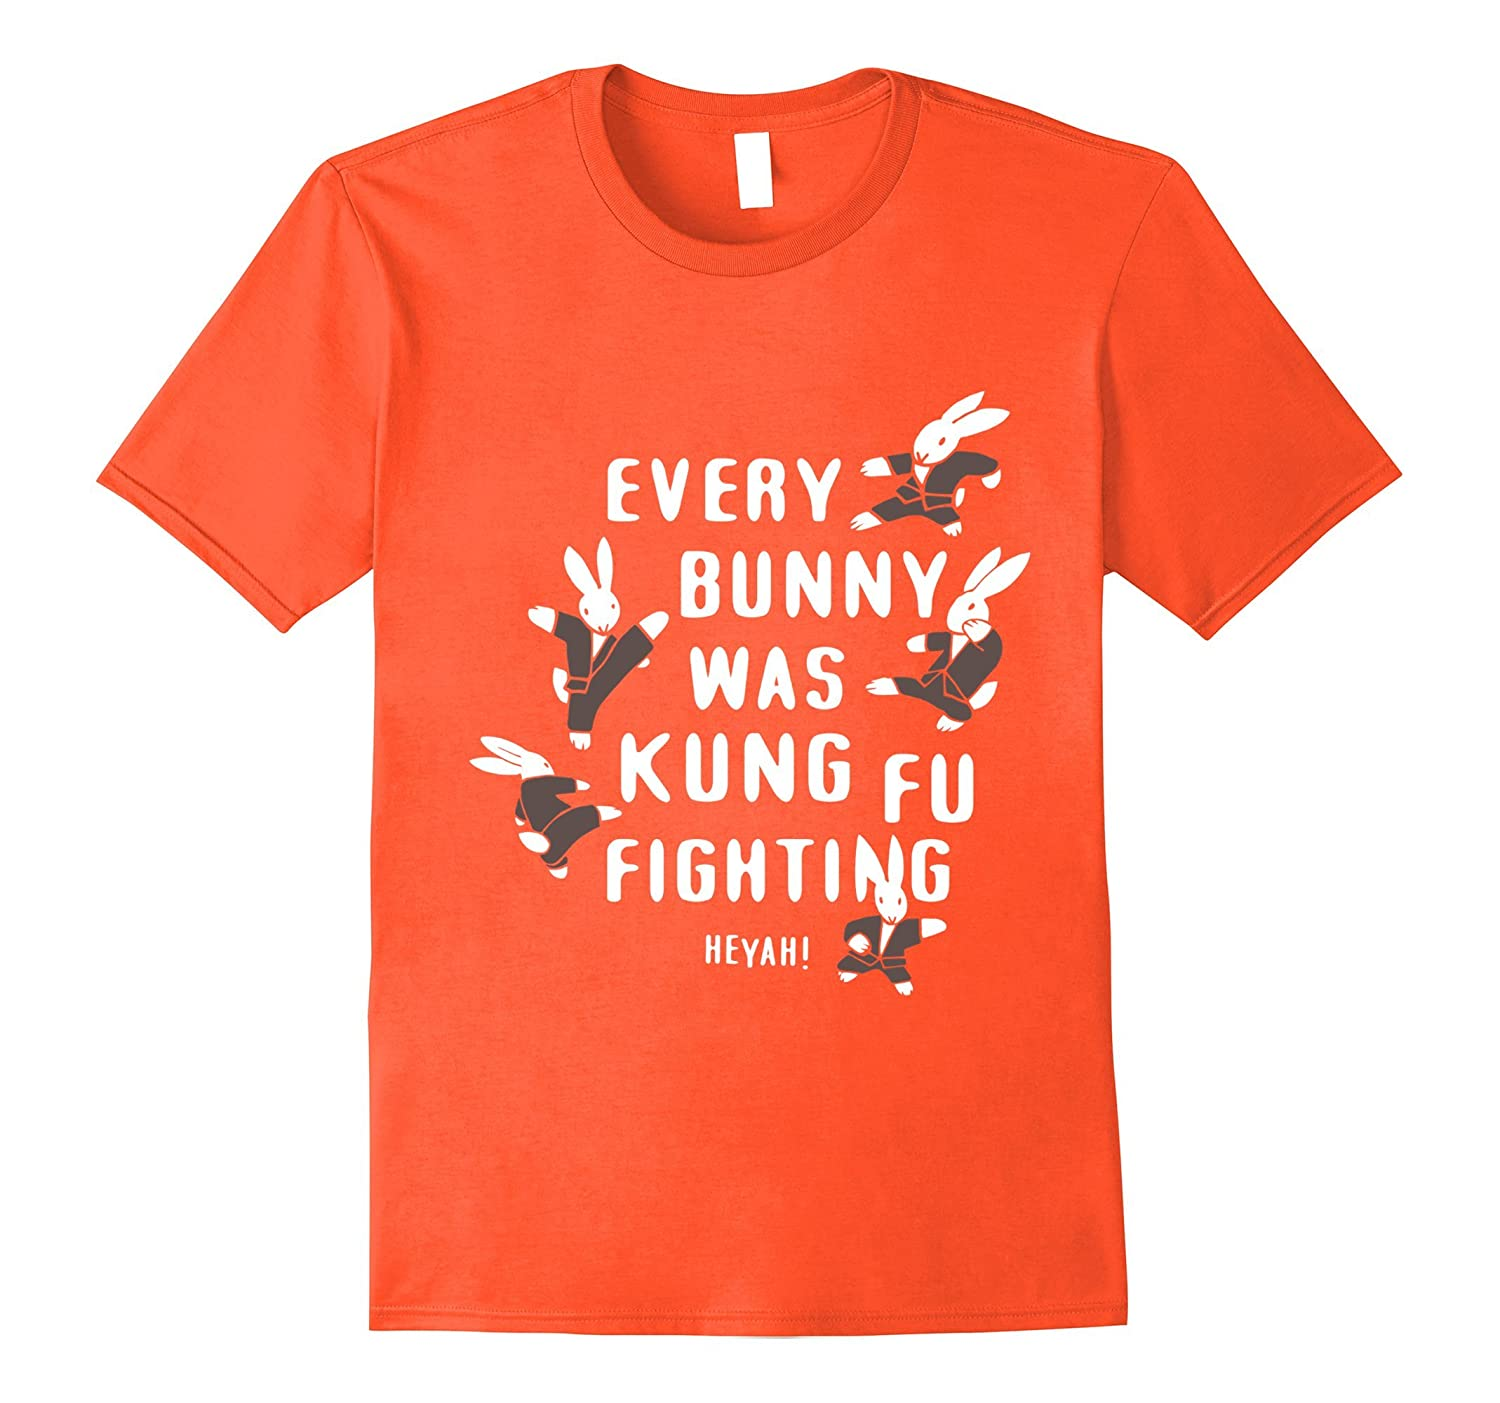 156a0155a Every Bunny Was Kung Fu Fighting T-Shirt-TH - TEEHELEN